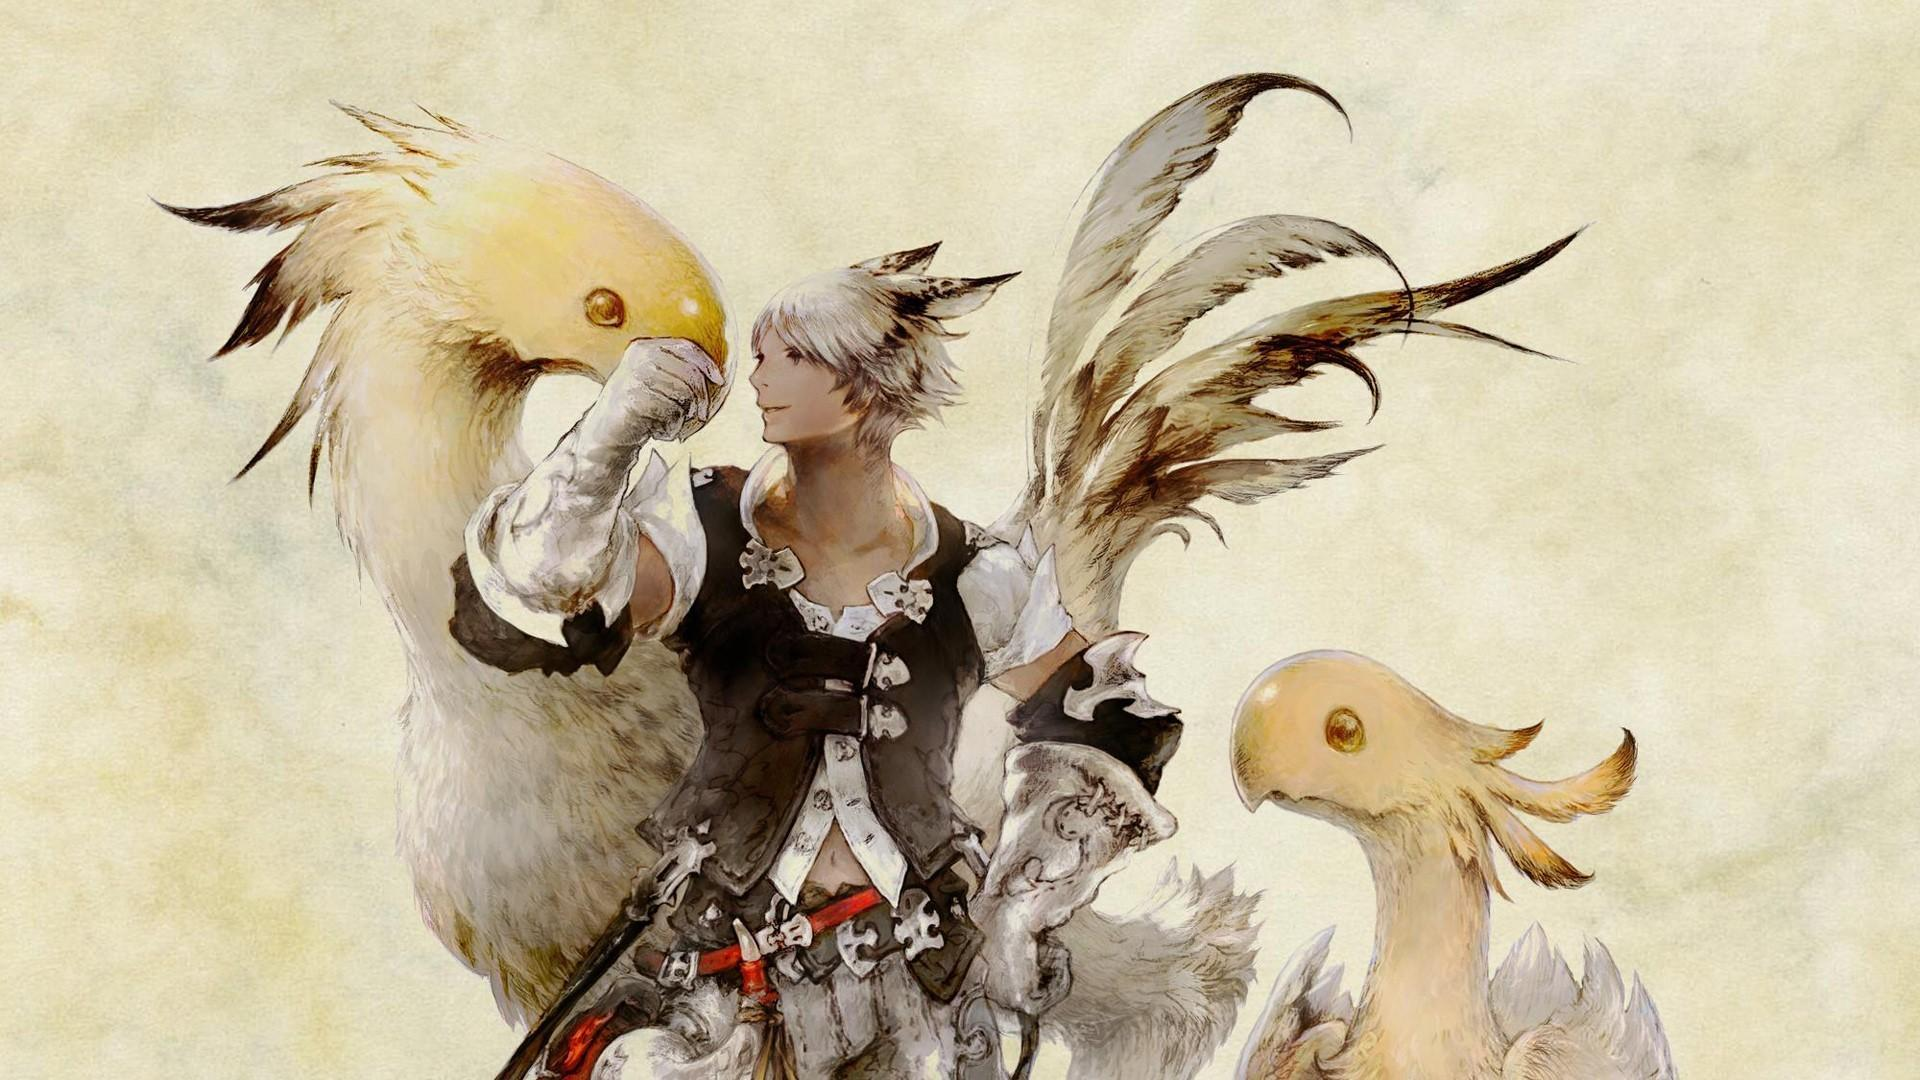 Final Fantasy Chocobo Wallpapers Wallpaper Cave